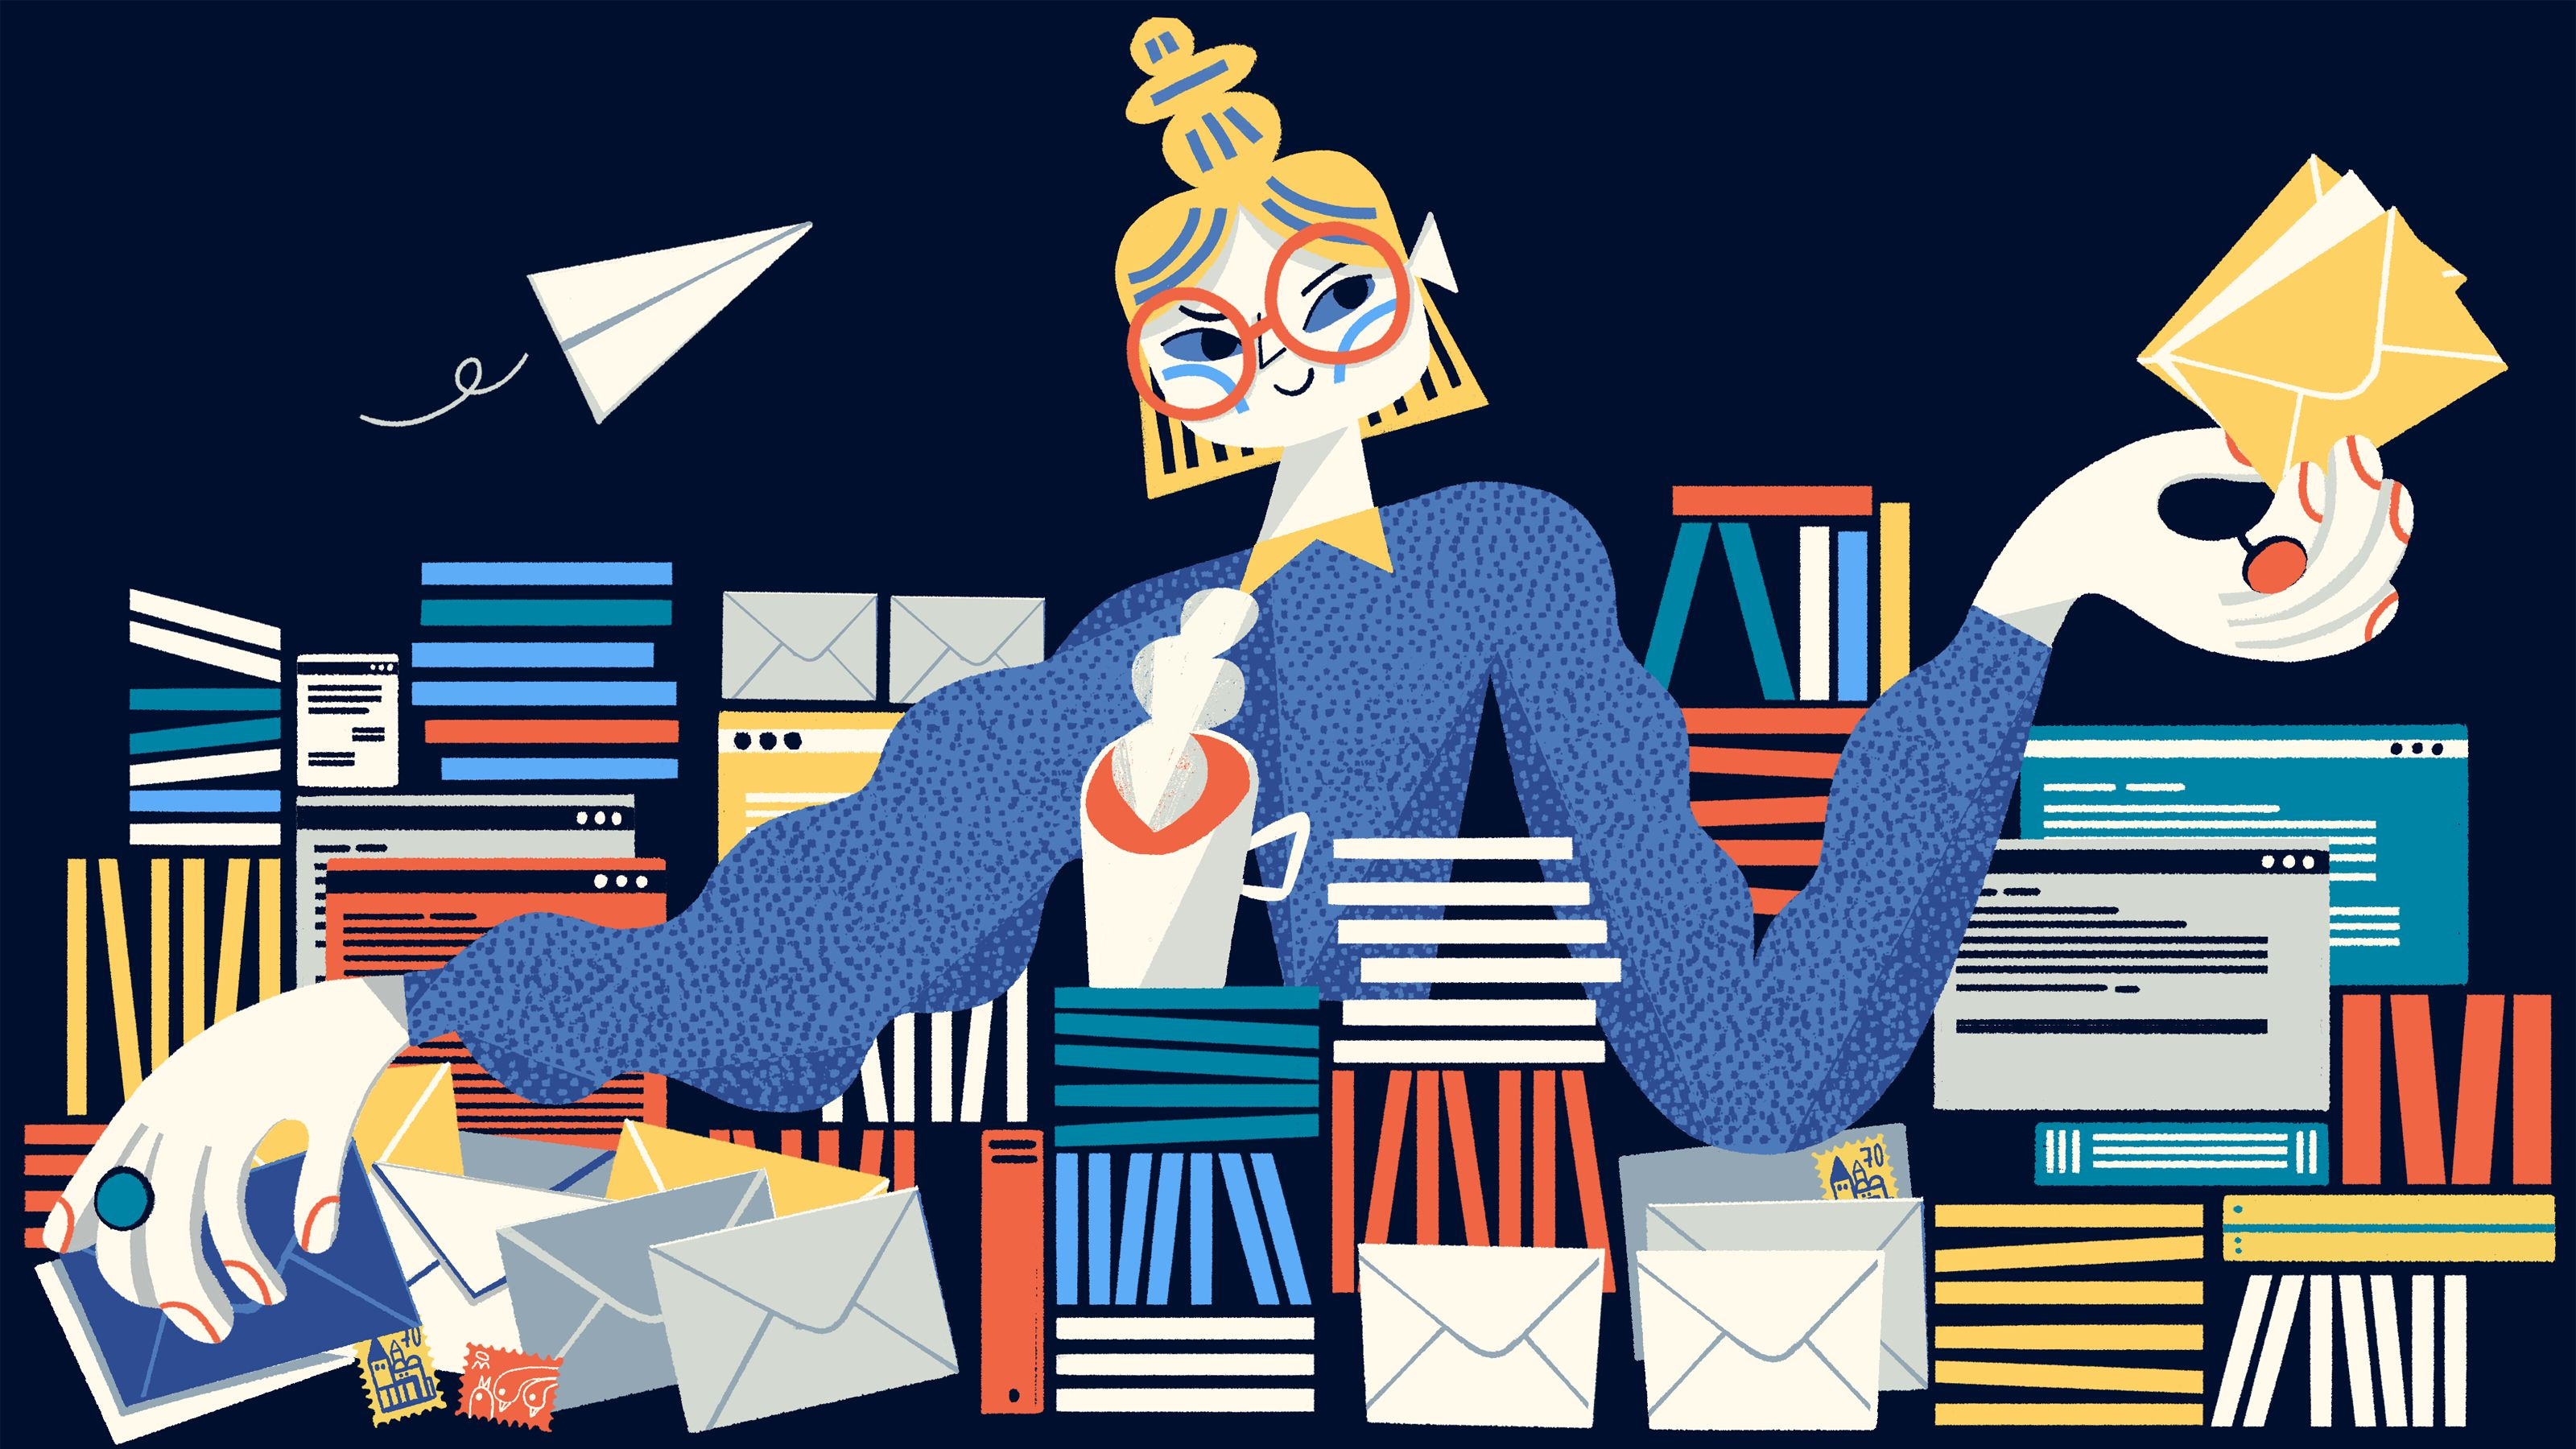 How to manage email: Tips on easy strategies for organizing your inbox